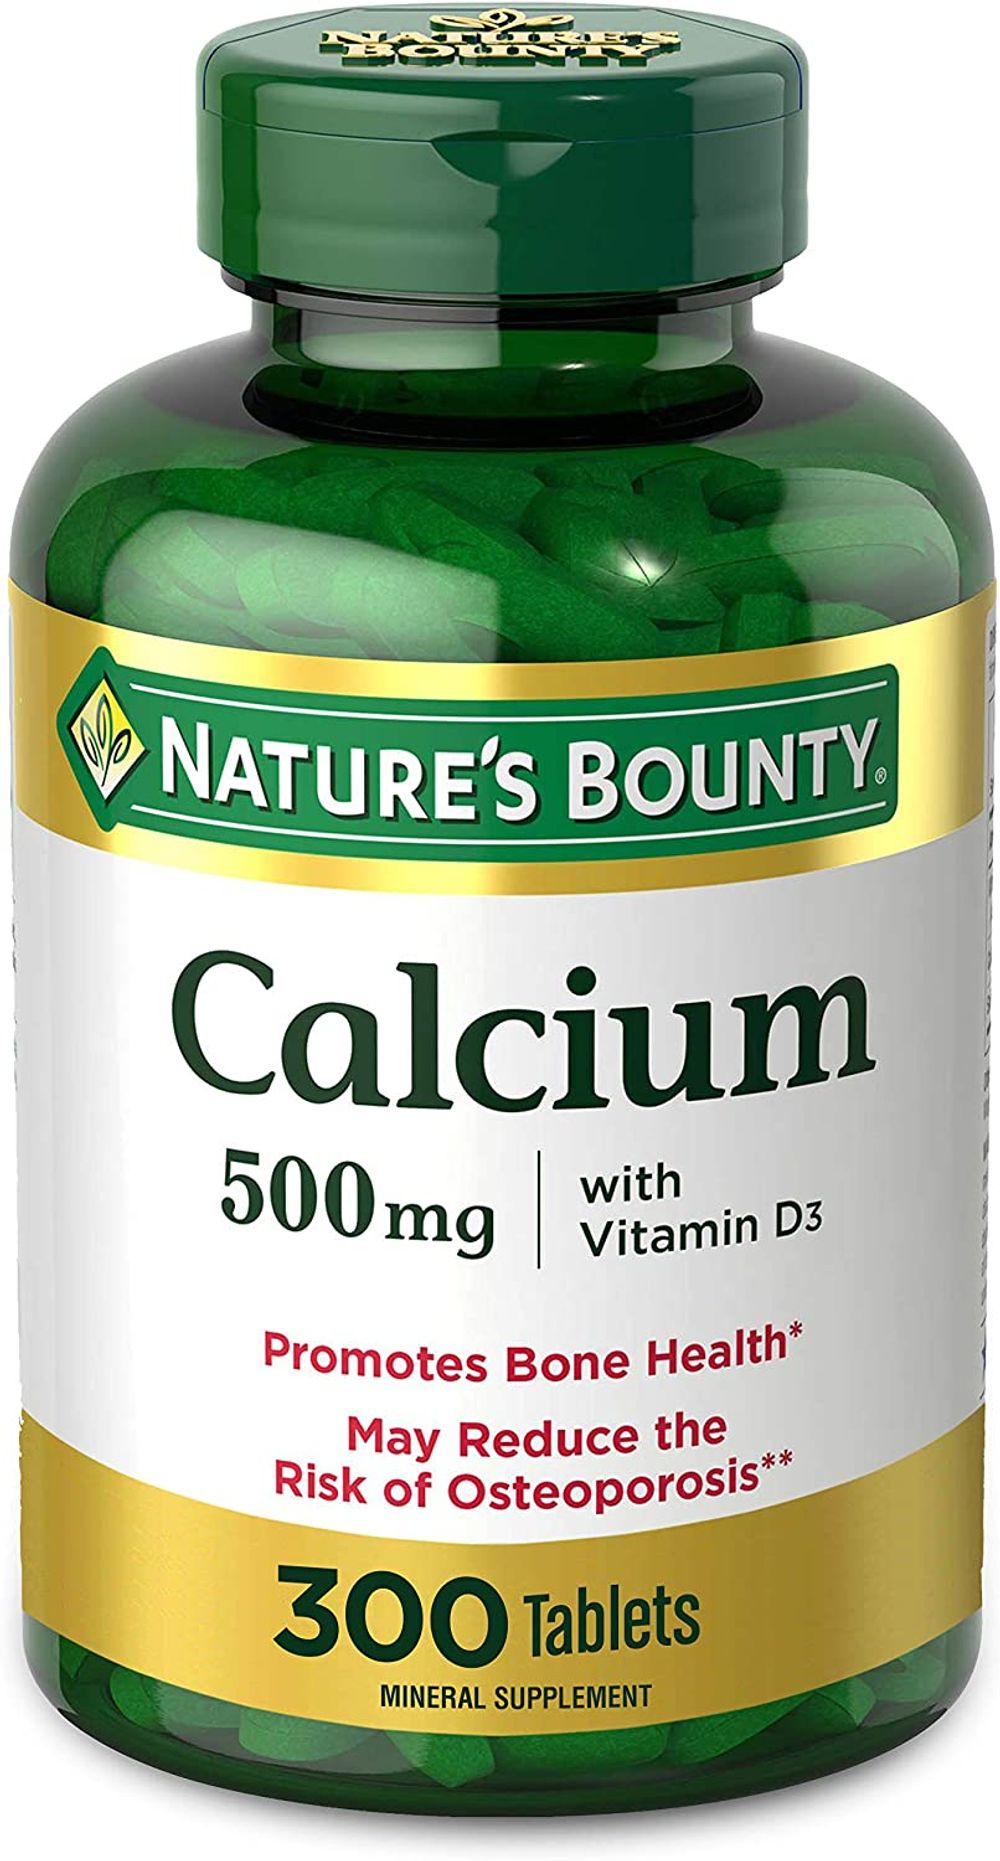 Calcium & Vitamin D by Nature's Bounty, Immnue Support & Bone Health, 500mg Calcium & 400IU D3, 300 Tablets